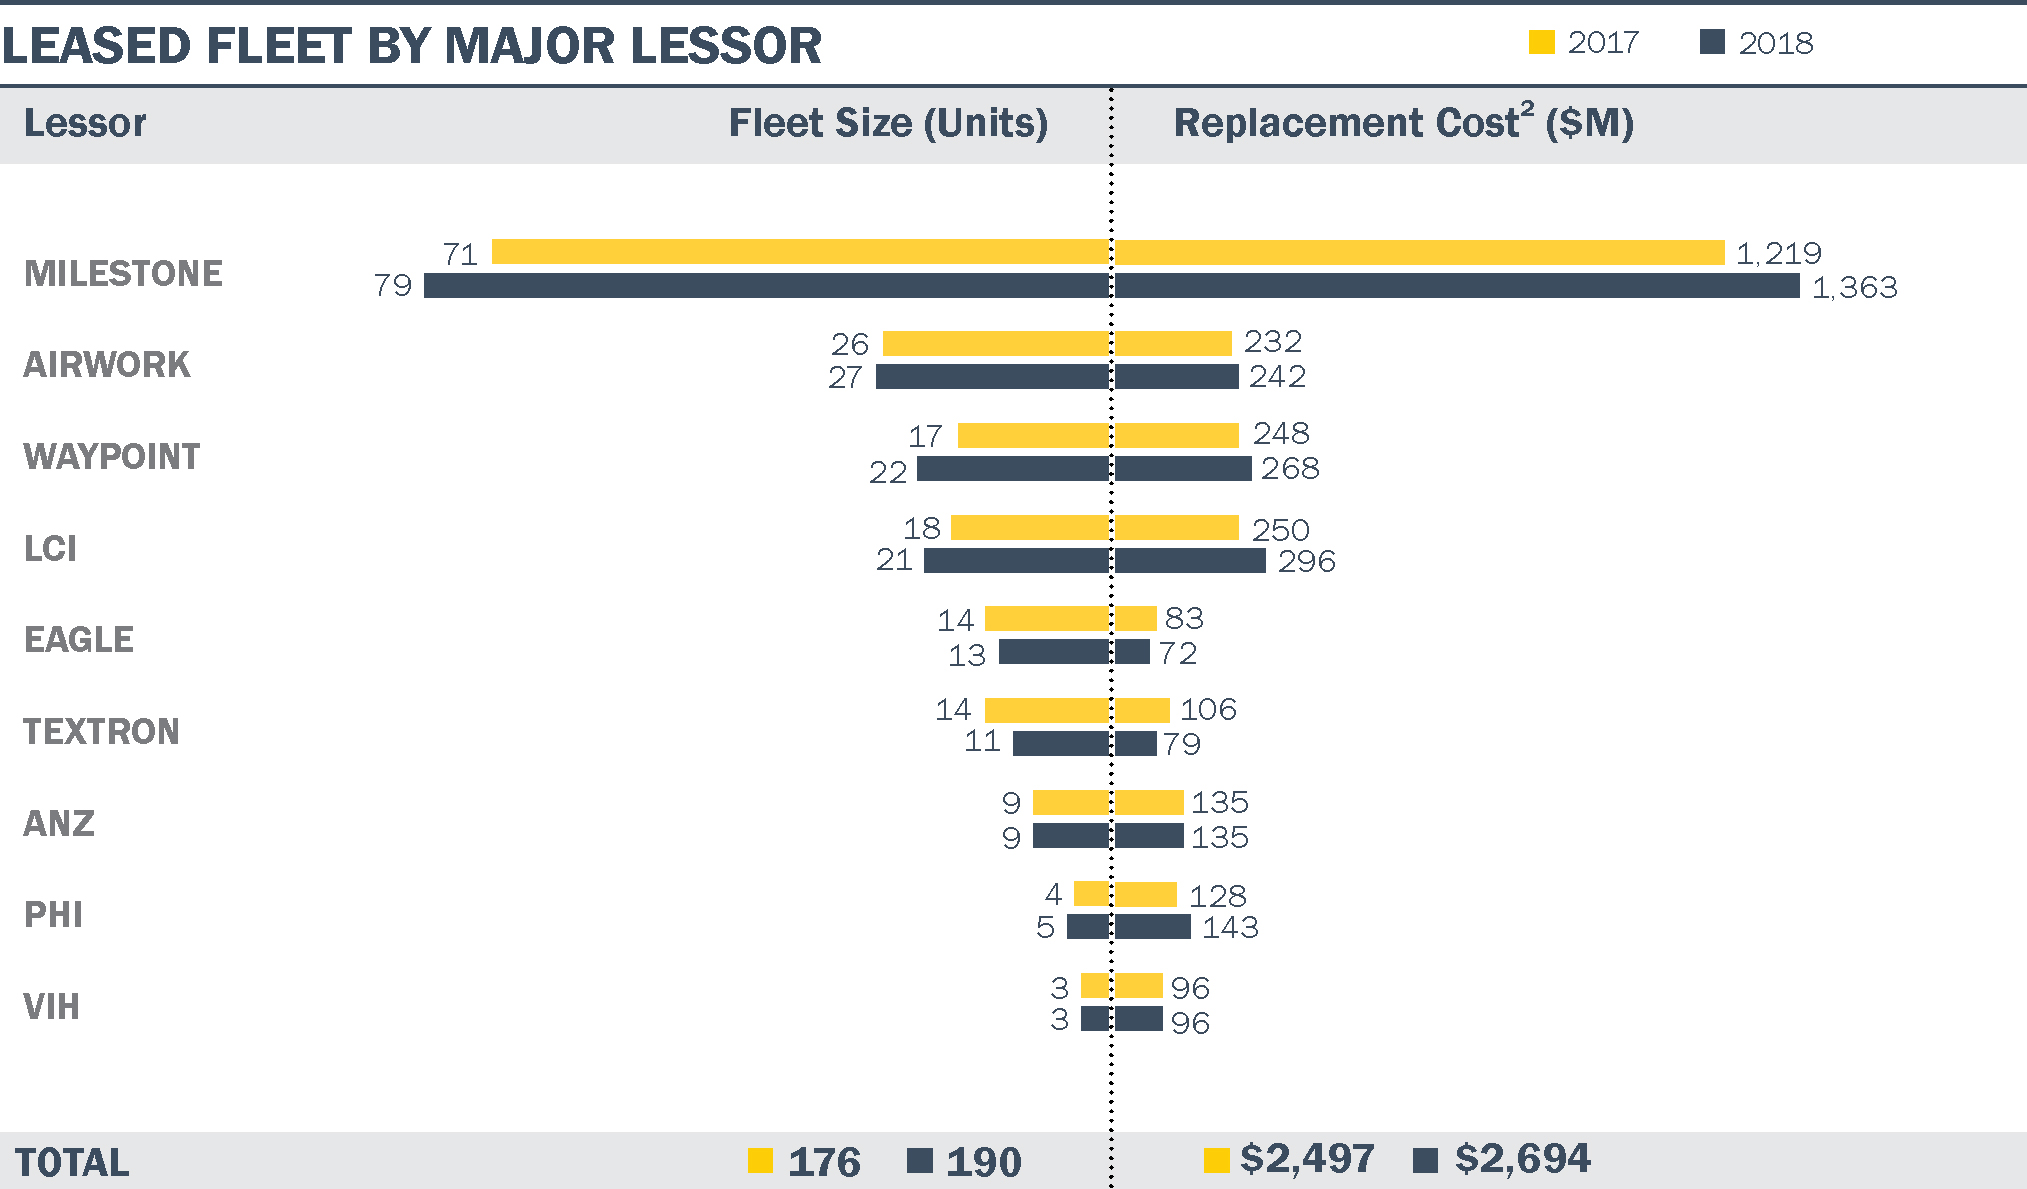 'Replacement Cost' figures are based on the assumption that all existing helicopters would be replaced by the latest versions of their particular OEM variant and at 2018 list prices.